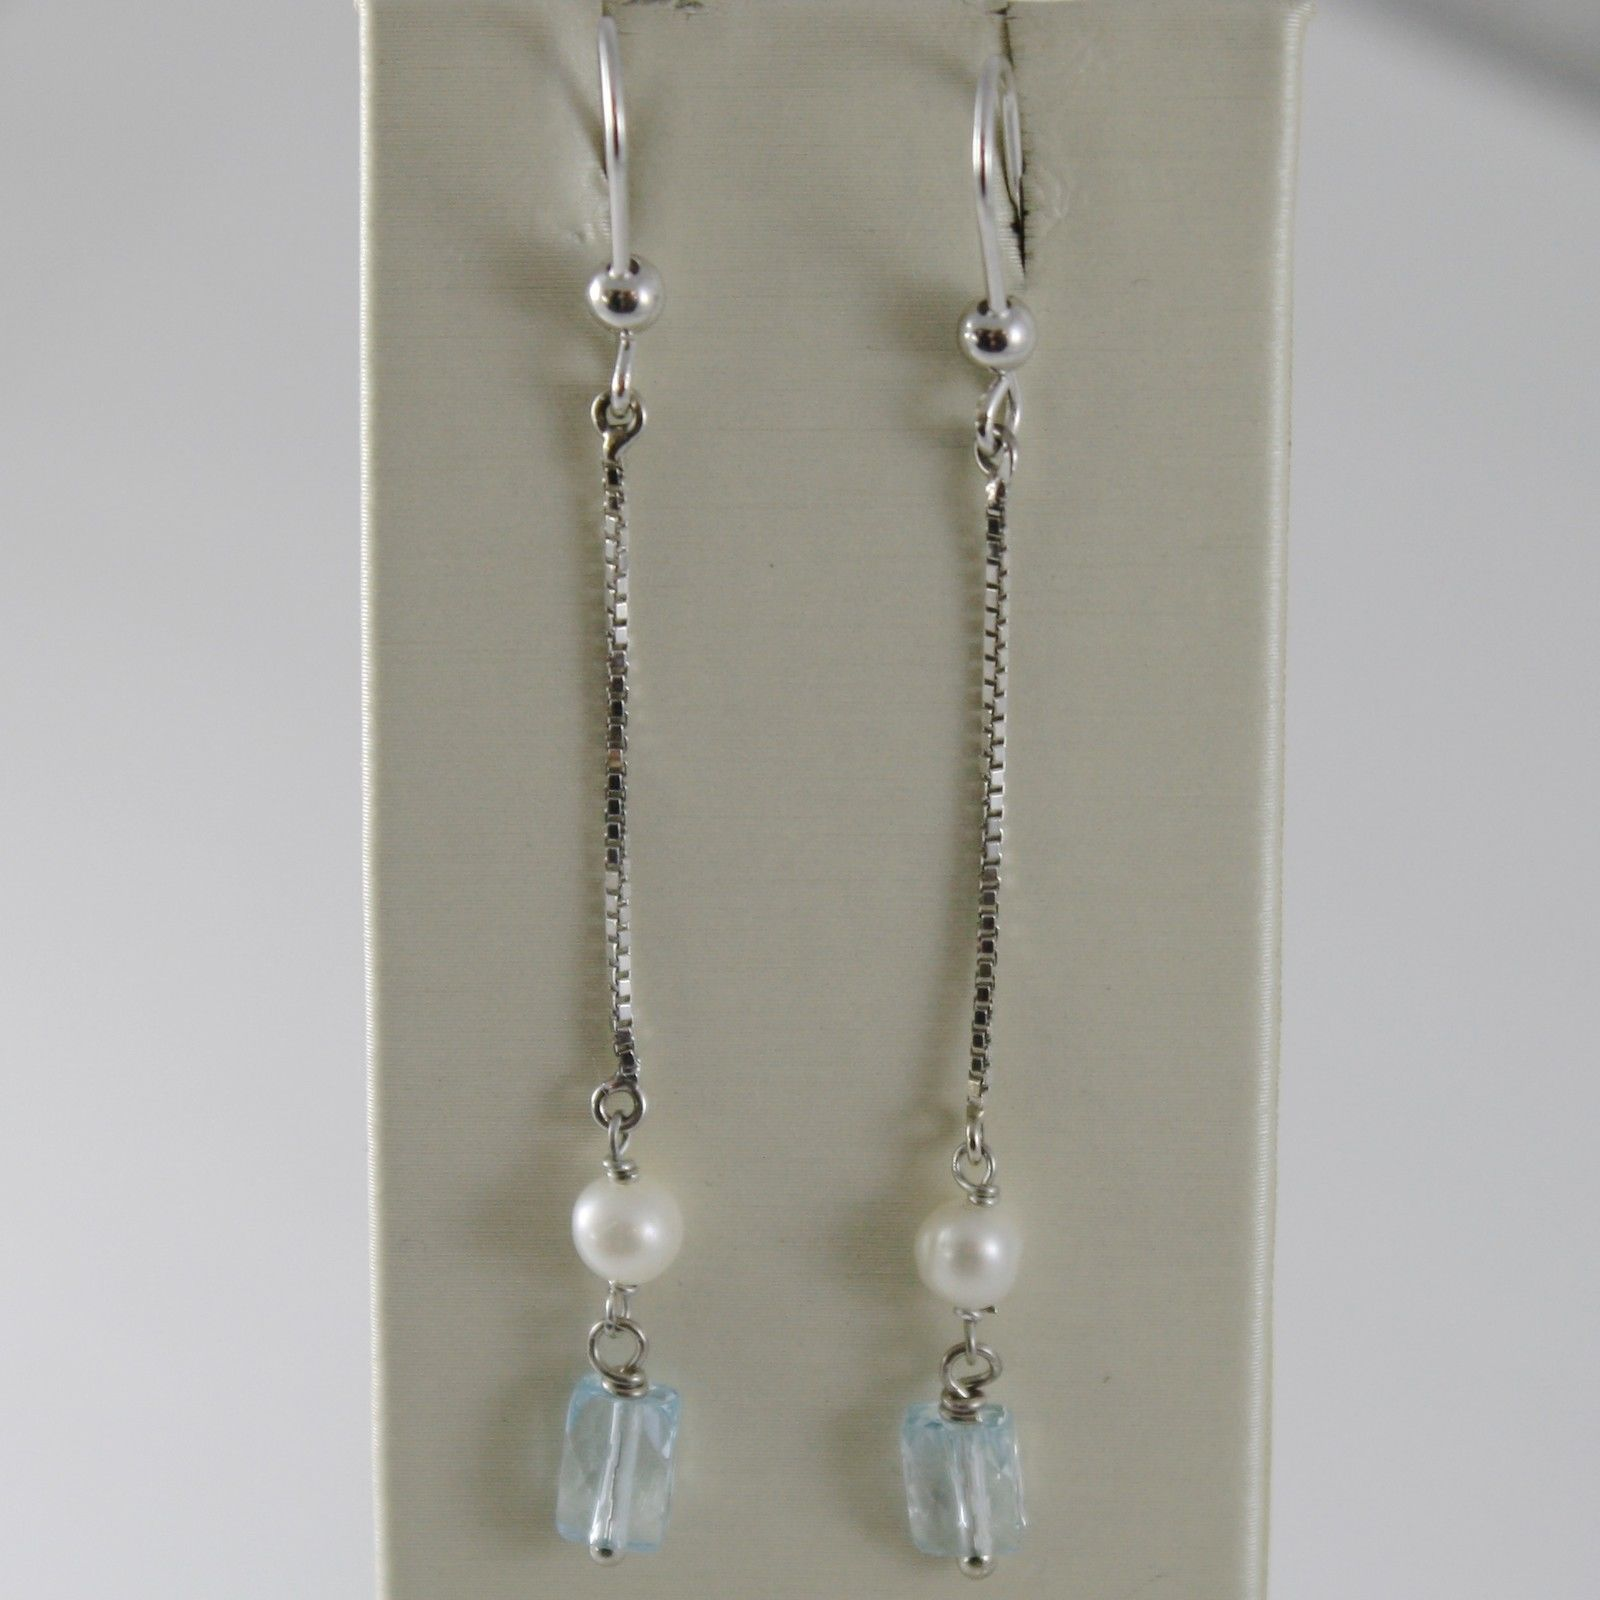 SOLID 18K WHITE GOLD PENDANT EARRINGS WITH BLUE TOPAZ AND PEARL MADE IN ITALY